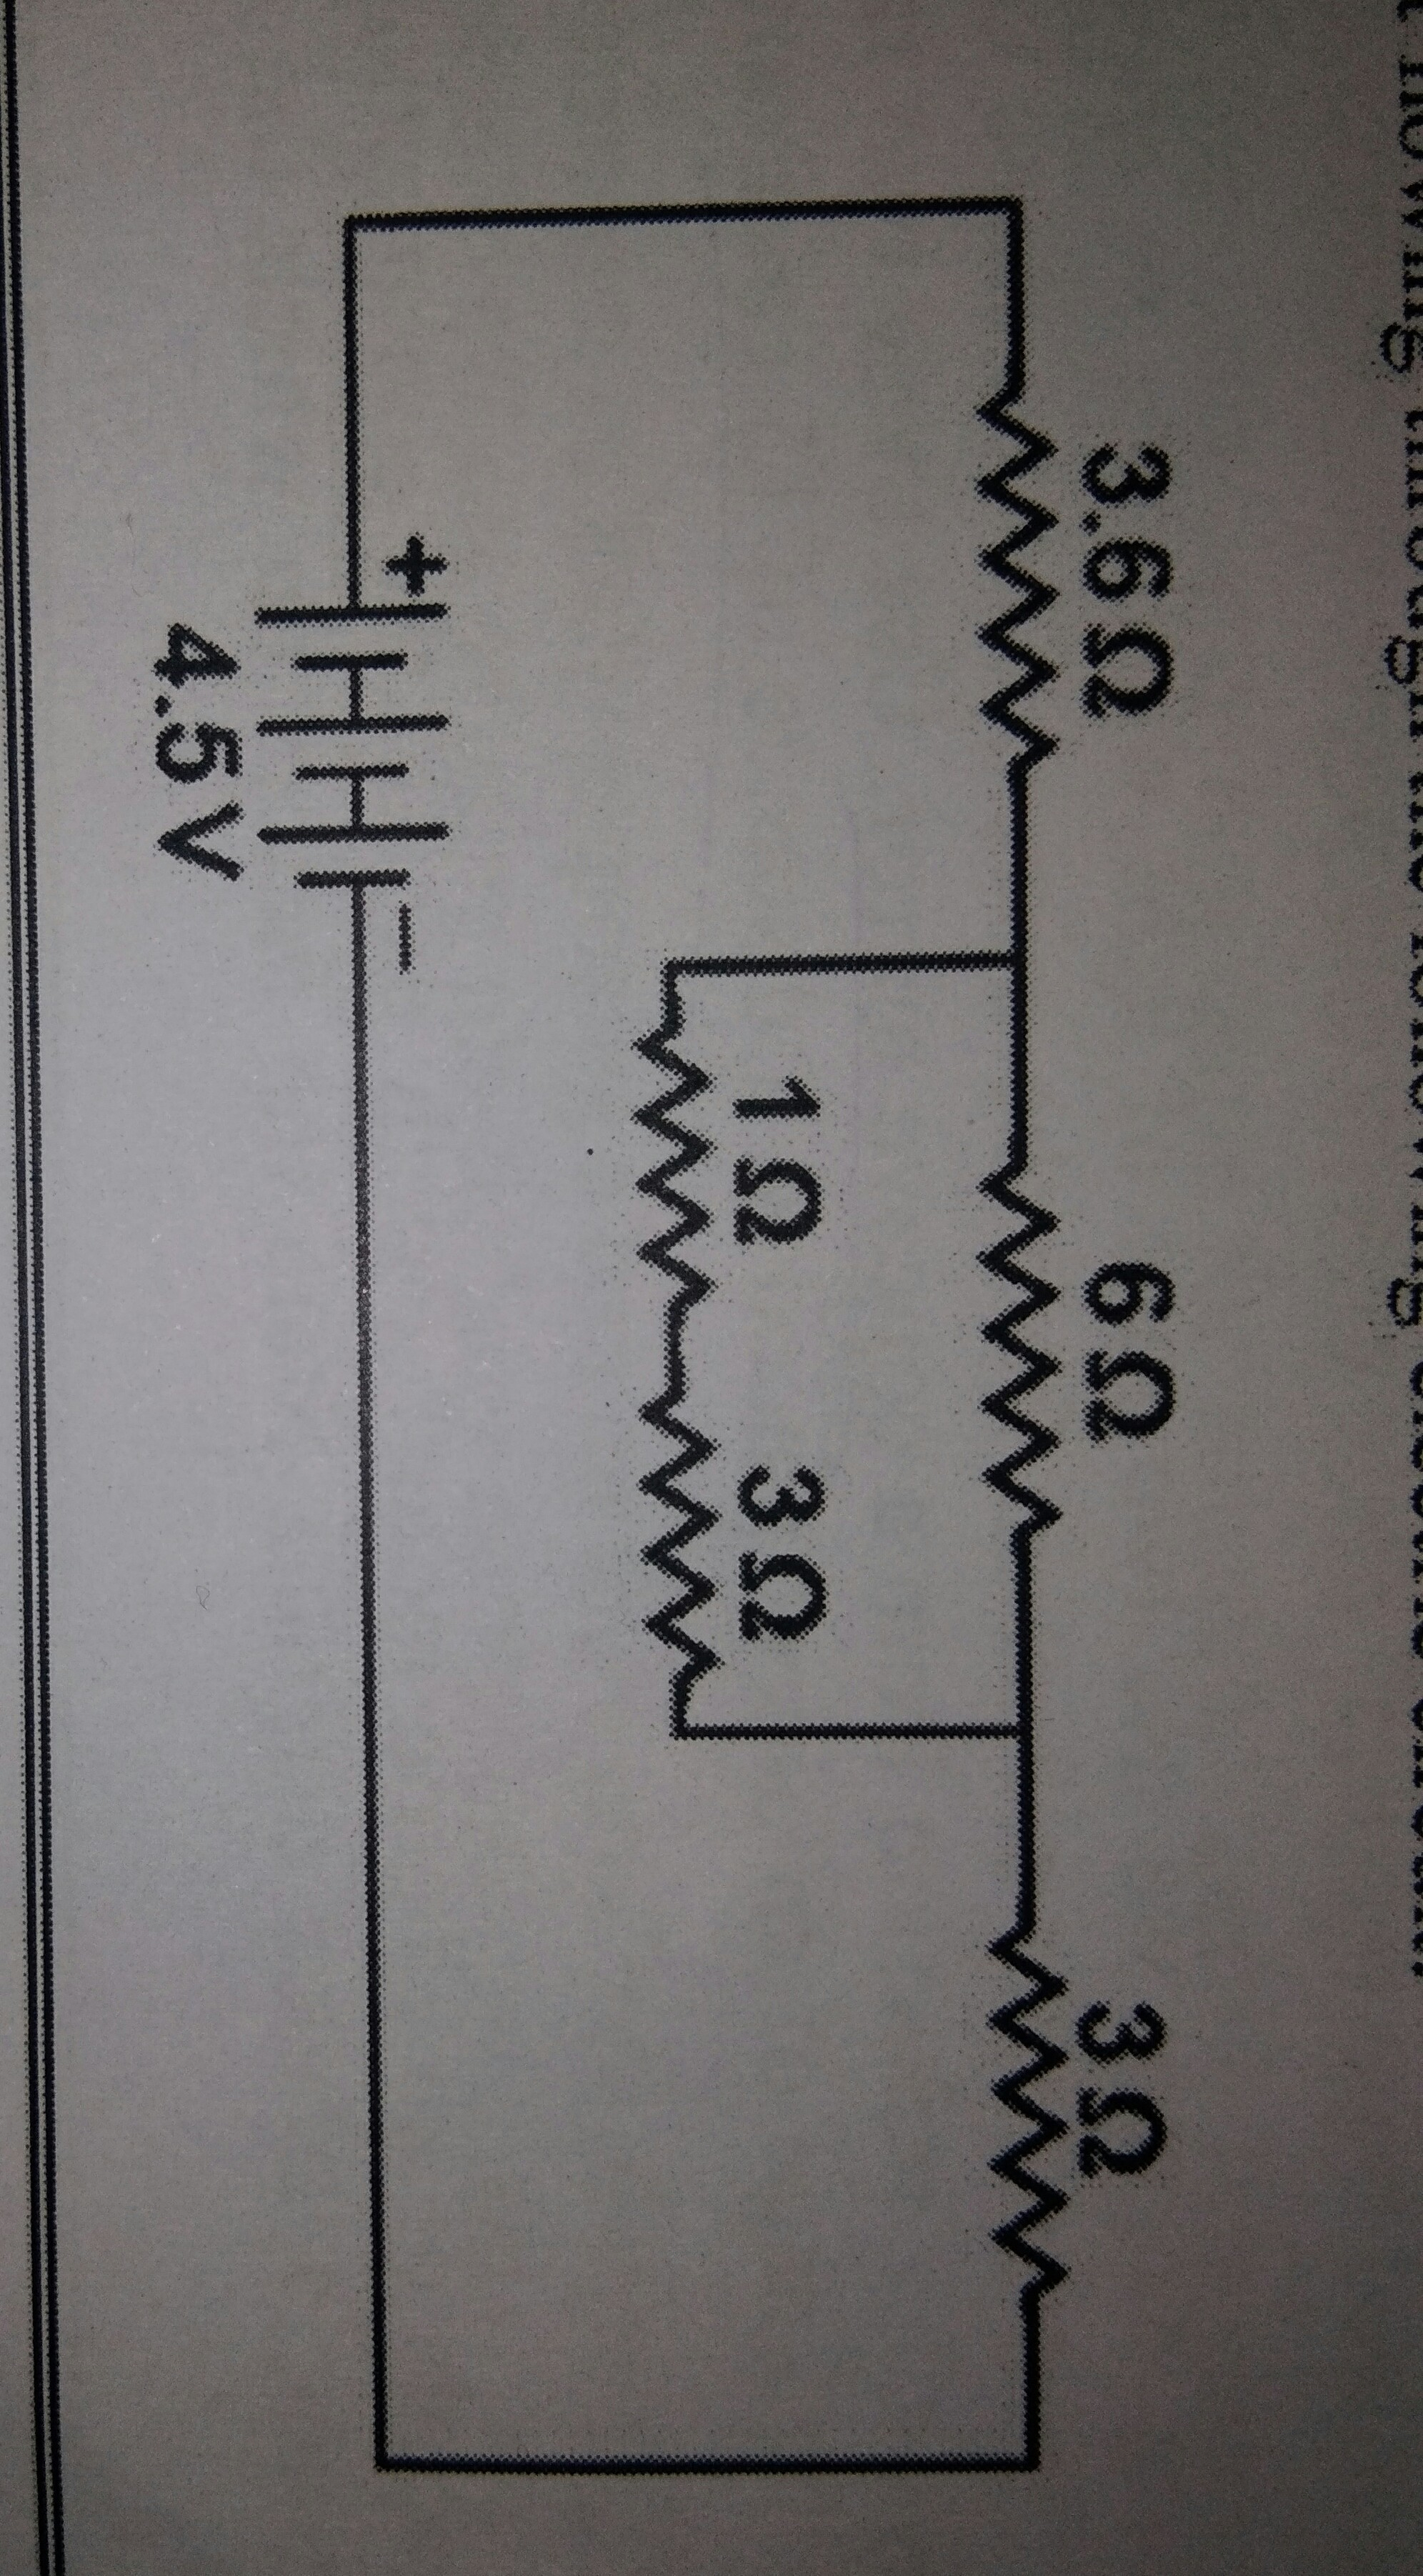 Parallel Electrical Circuit